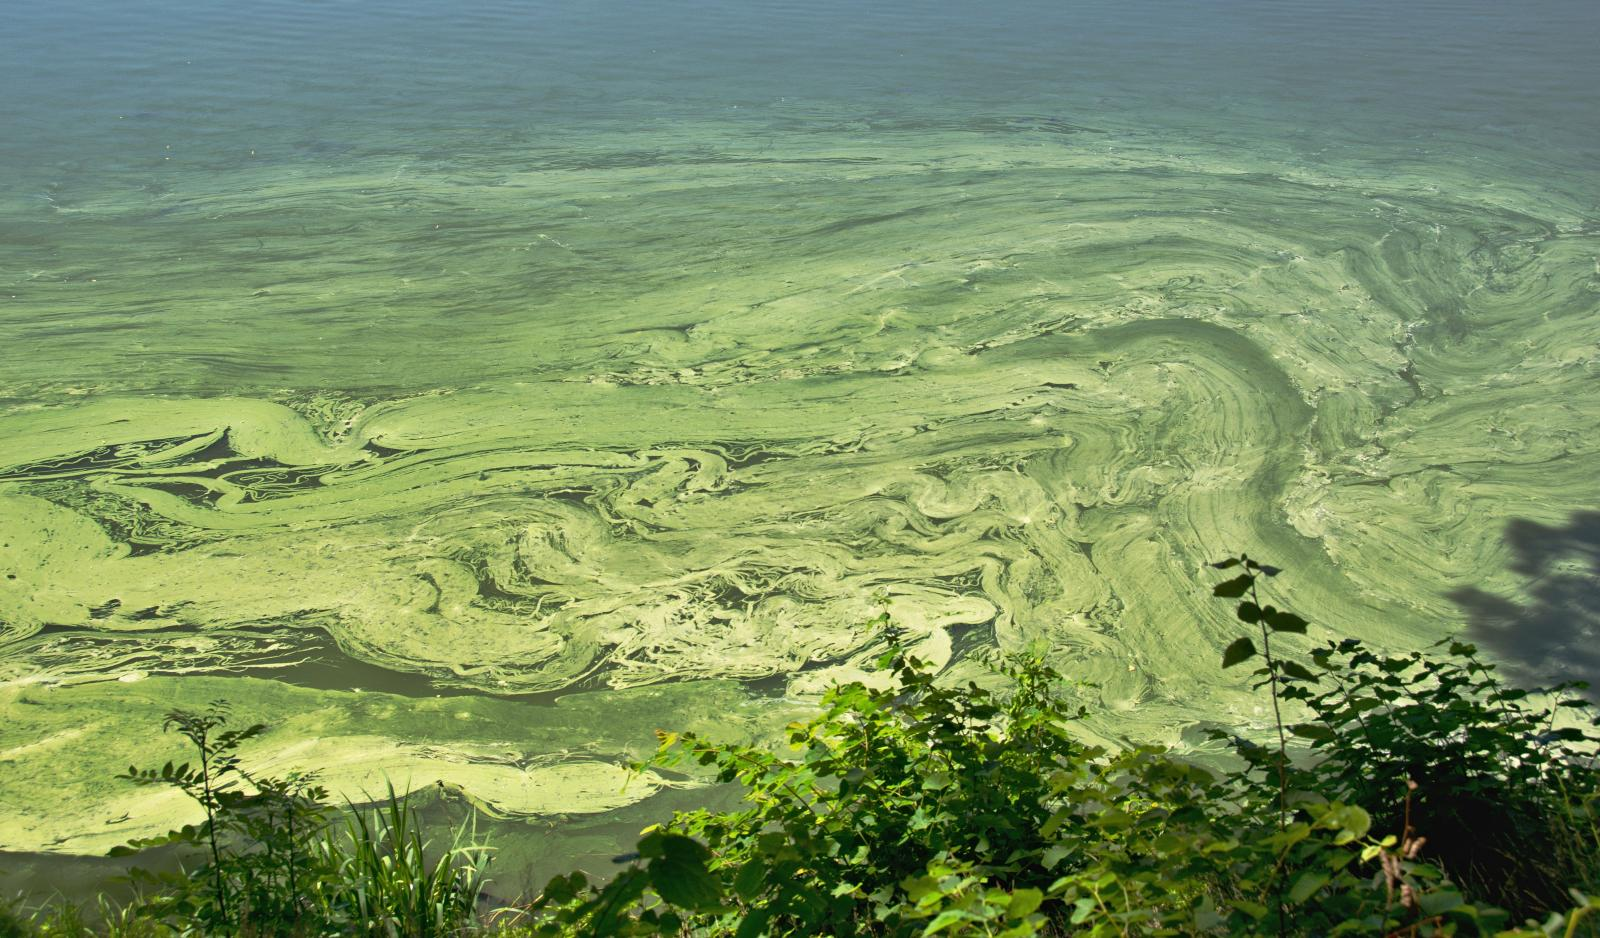 Blue Green Algae warnings after the UK summer heat and dry spell